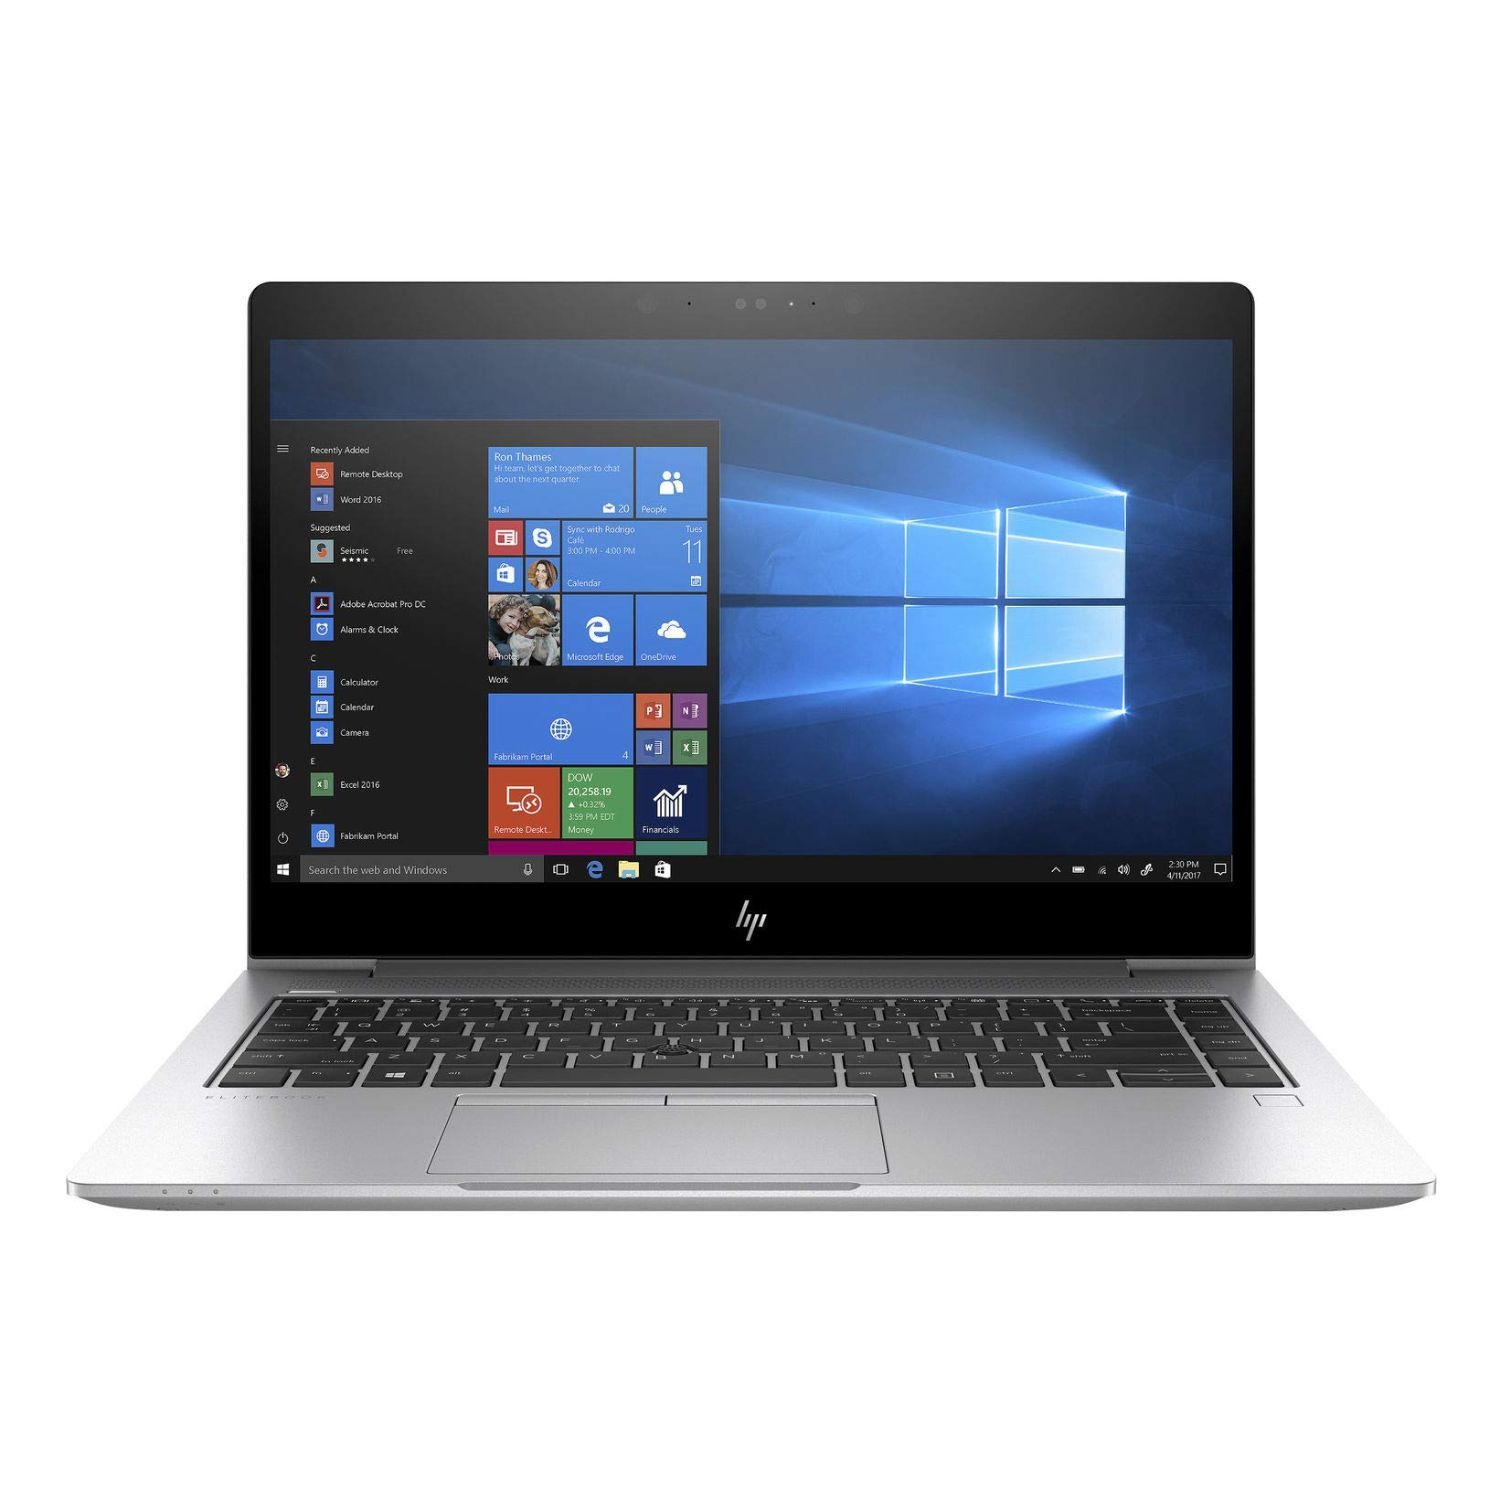 6 Best Business Laptops for 2019 - Our Favorite Laptops for Work